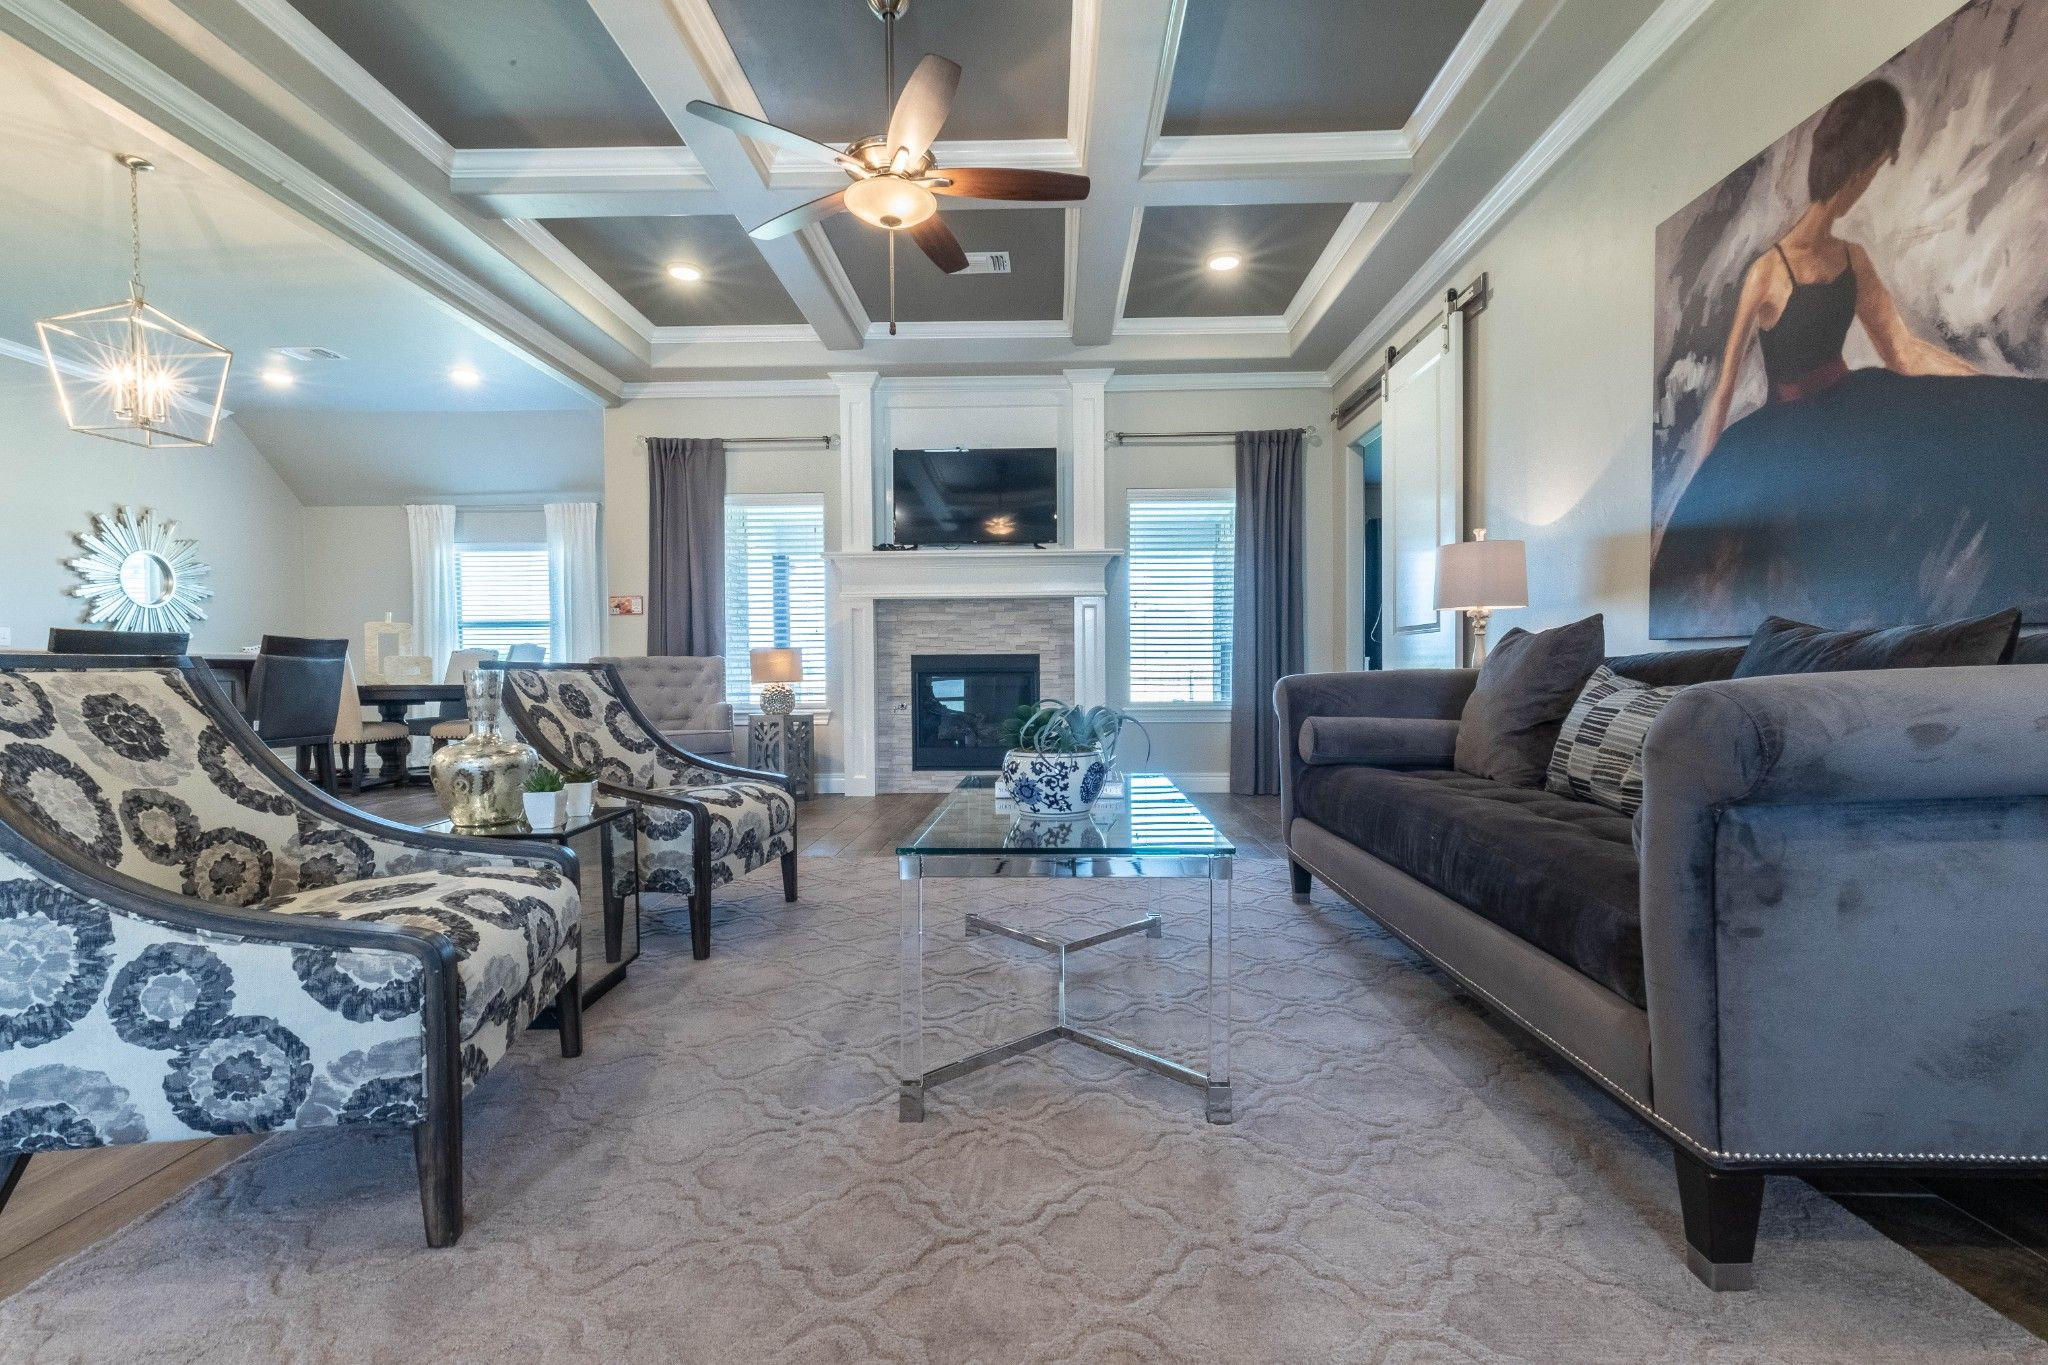 Living Area featured in the Cornerstone Bonus Room - 5 Bedroom By Homes By Taber